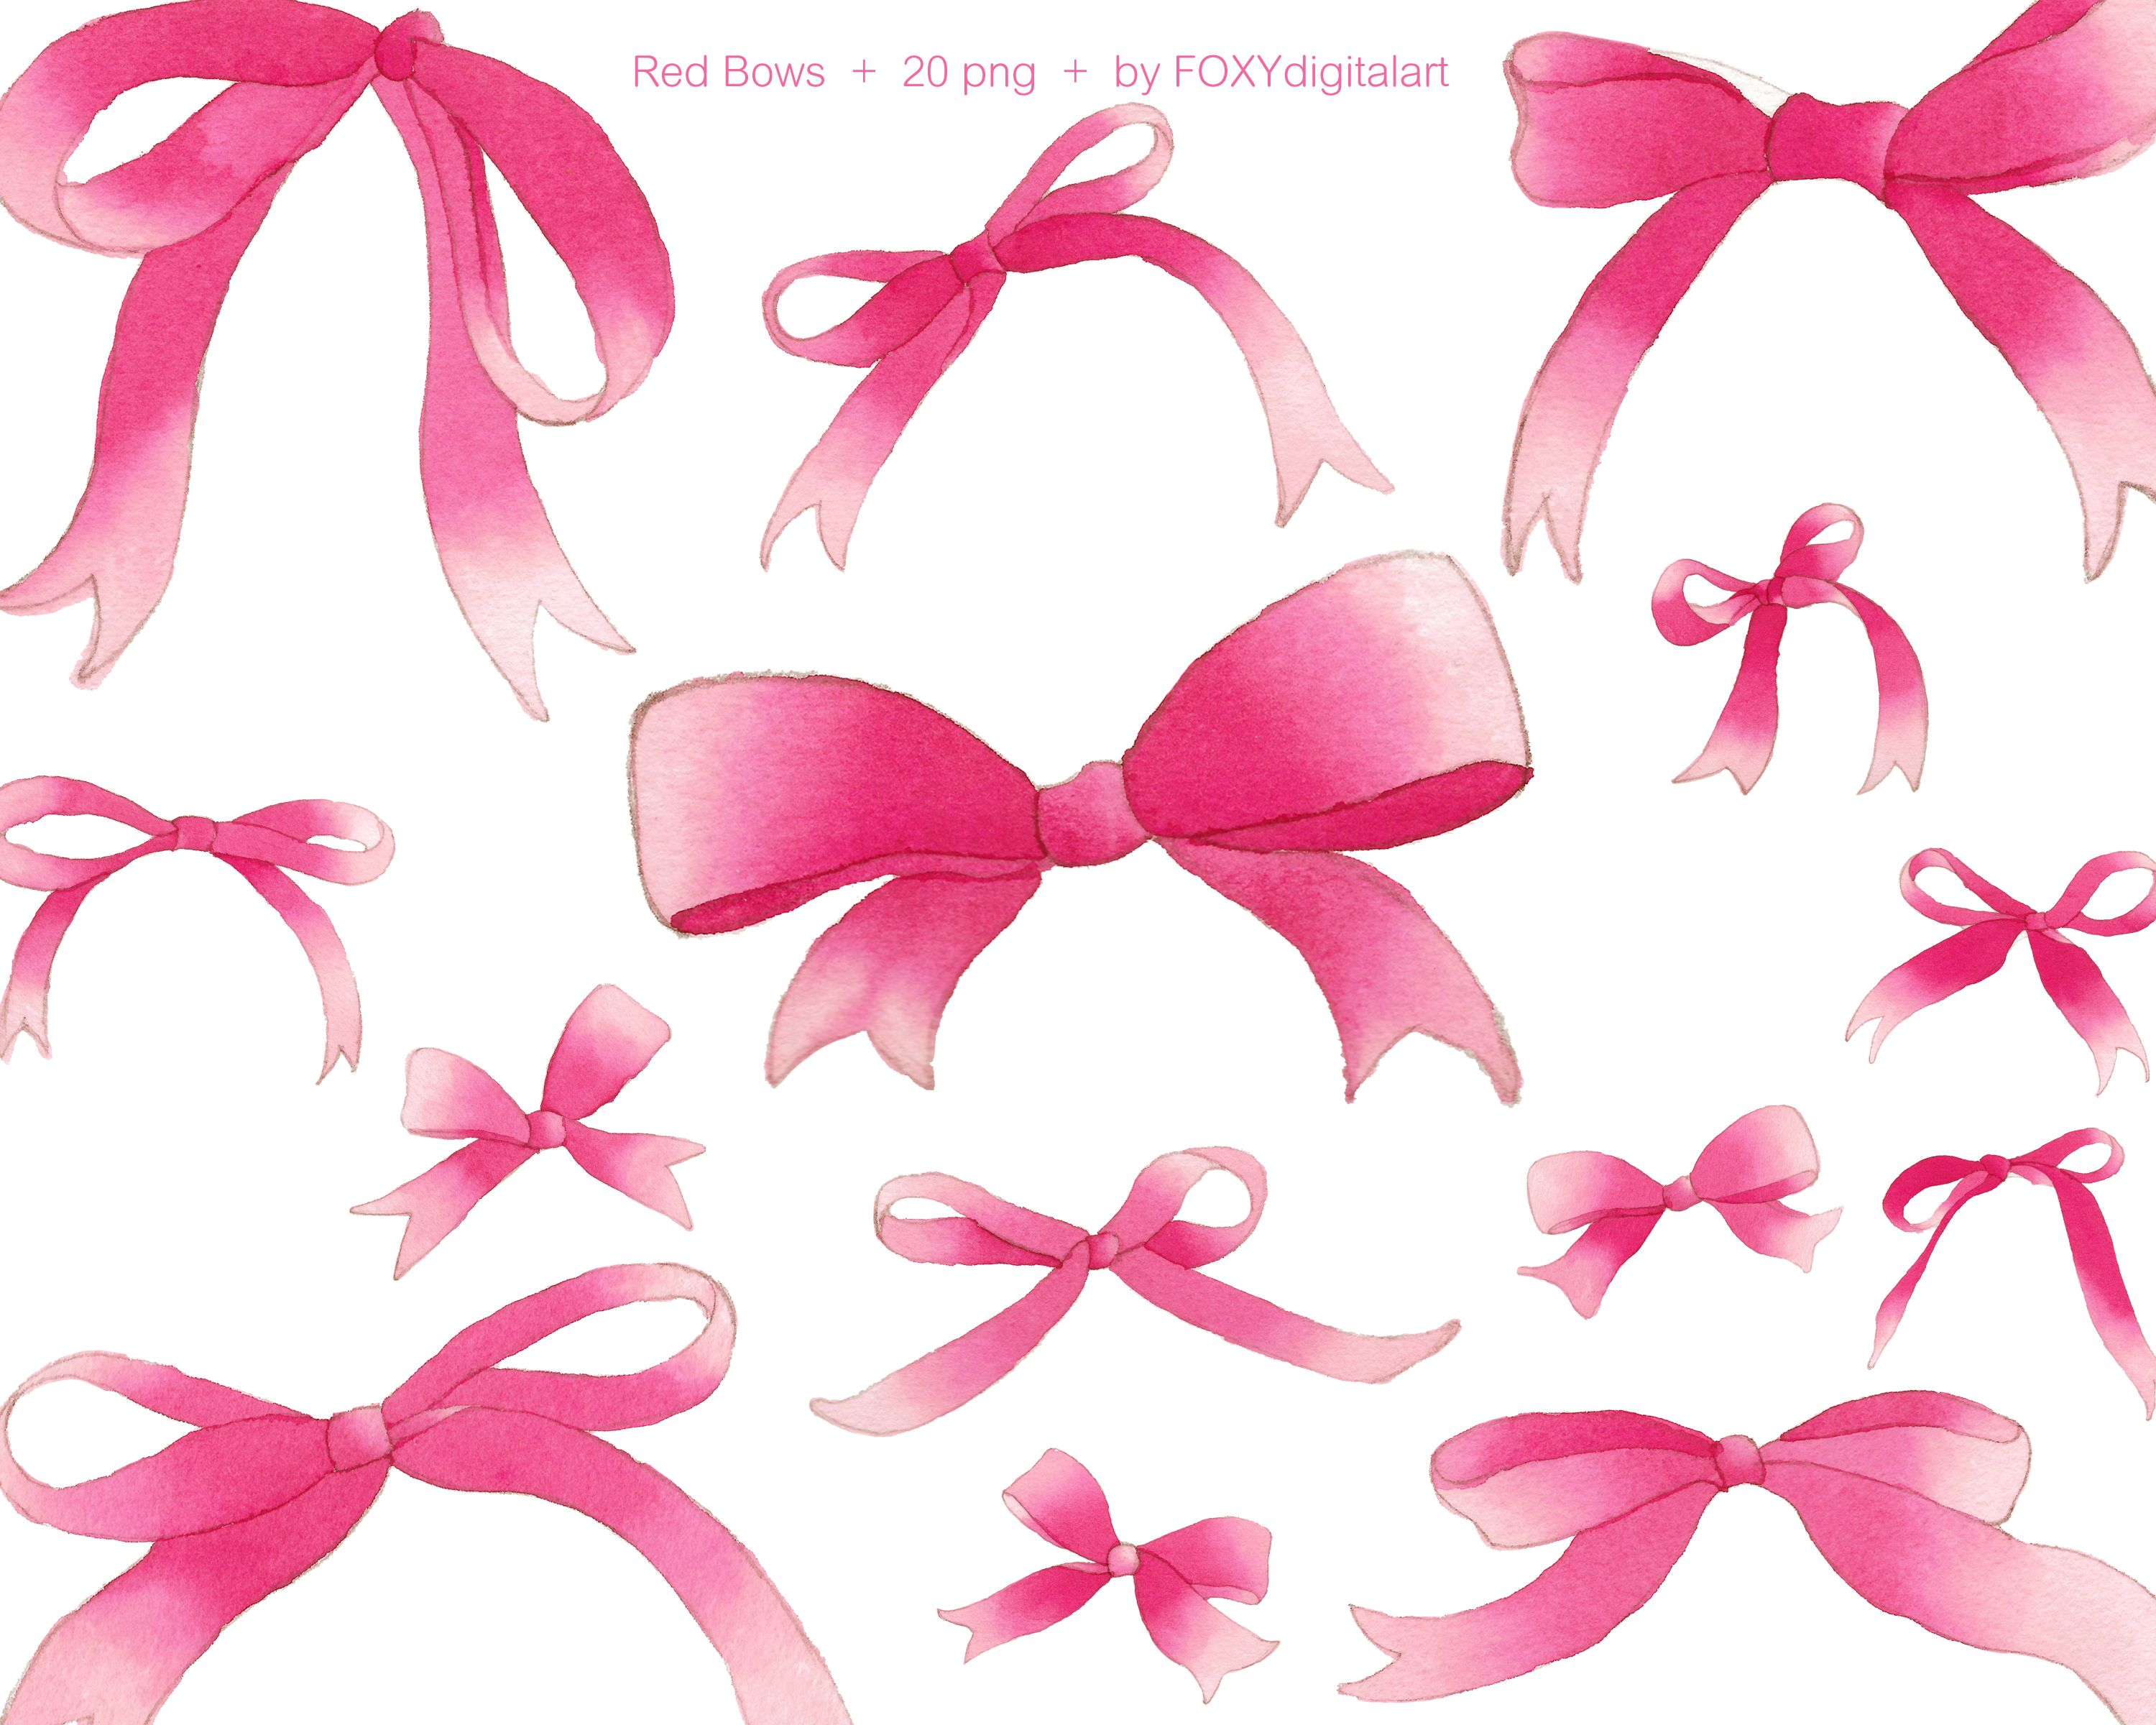 Red ribbon clipart, red bow clip art, watercolor ribbon.